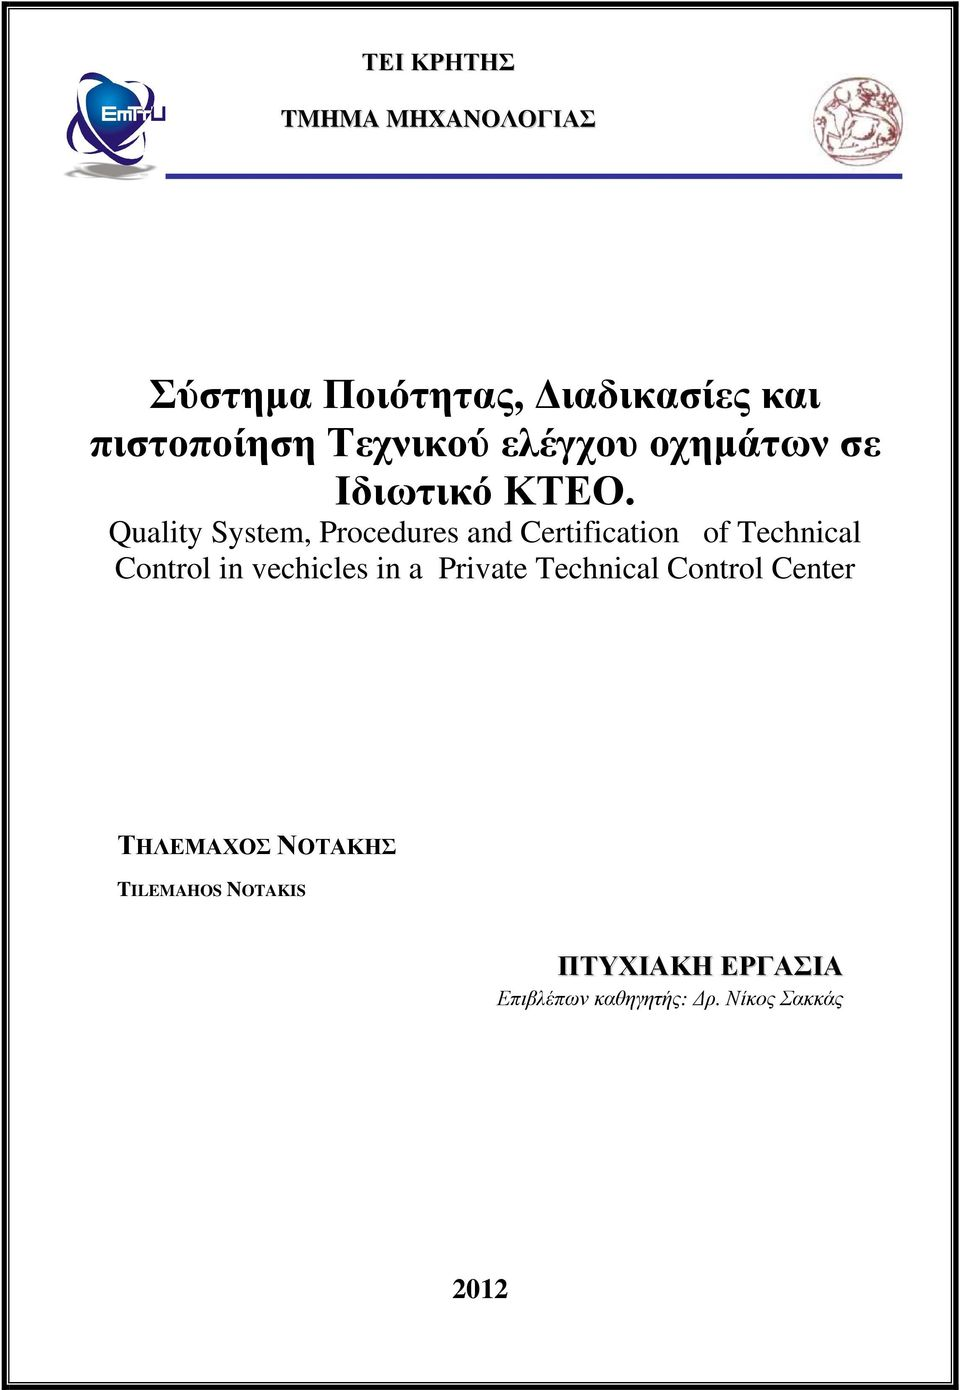 Quality System, Procedures and Certification of Technical Control in vechicles in